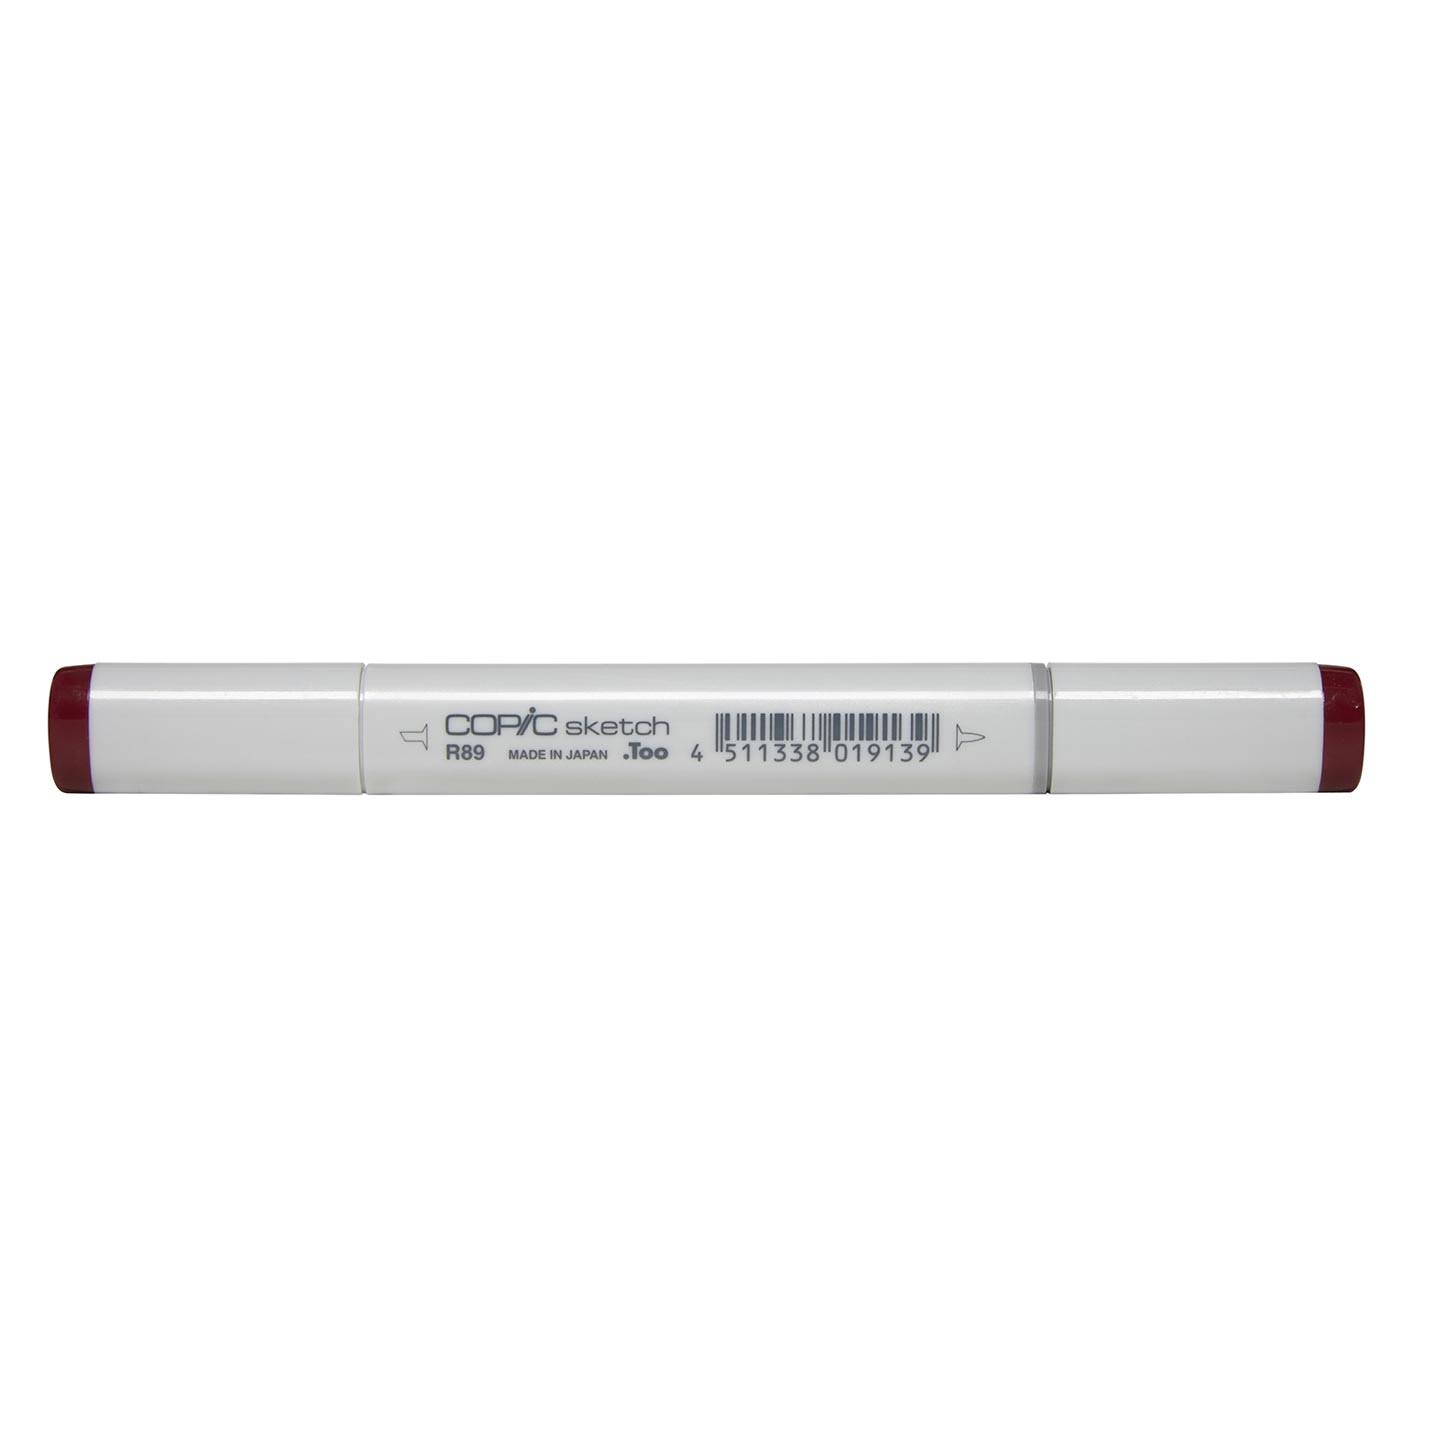 Copic Sketch Marker - Dark Red